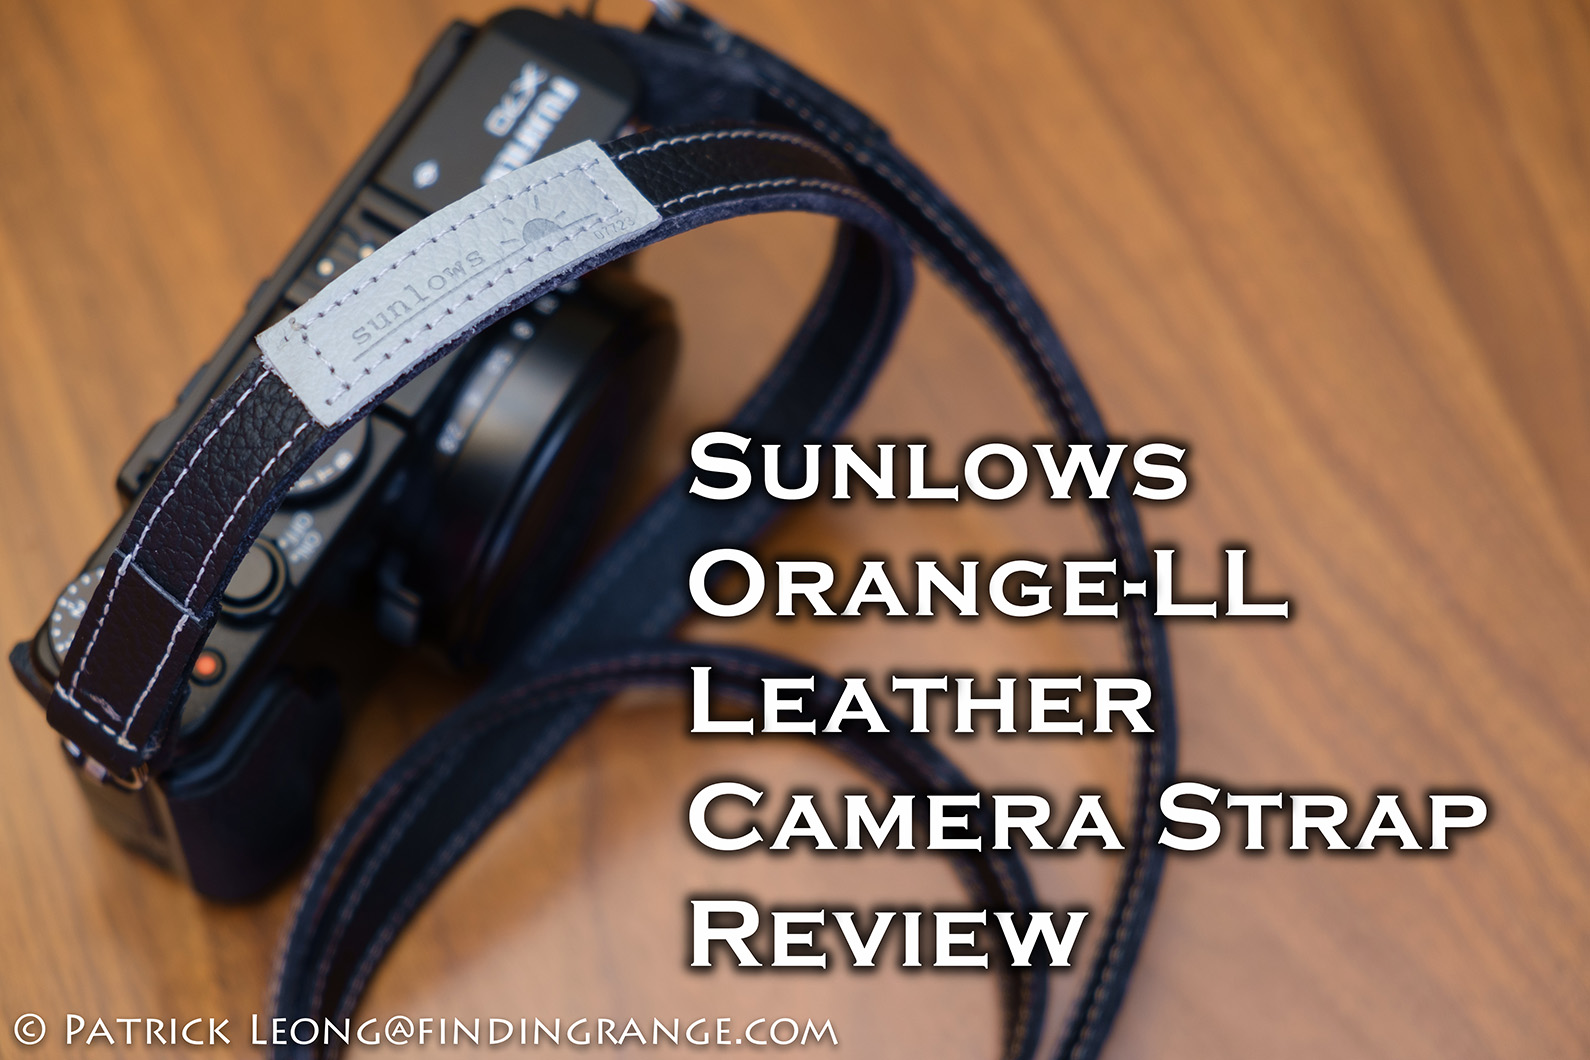 Sunlows-Orange-LL-Leather-Camera-Neck-Strap-Review-Fuji-X70-1